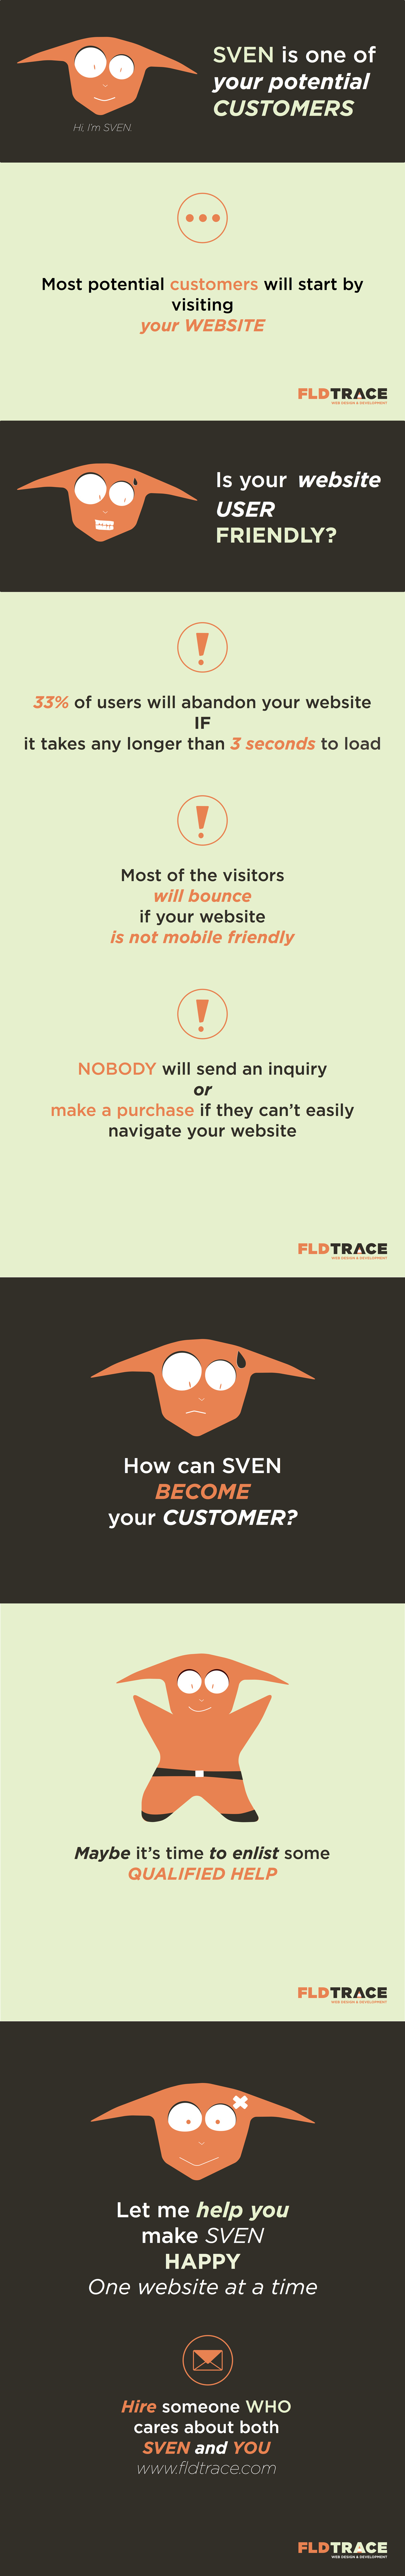 The Sven Campaign For Better Websites